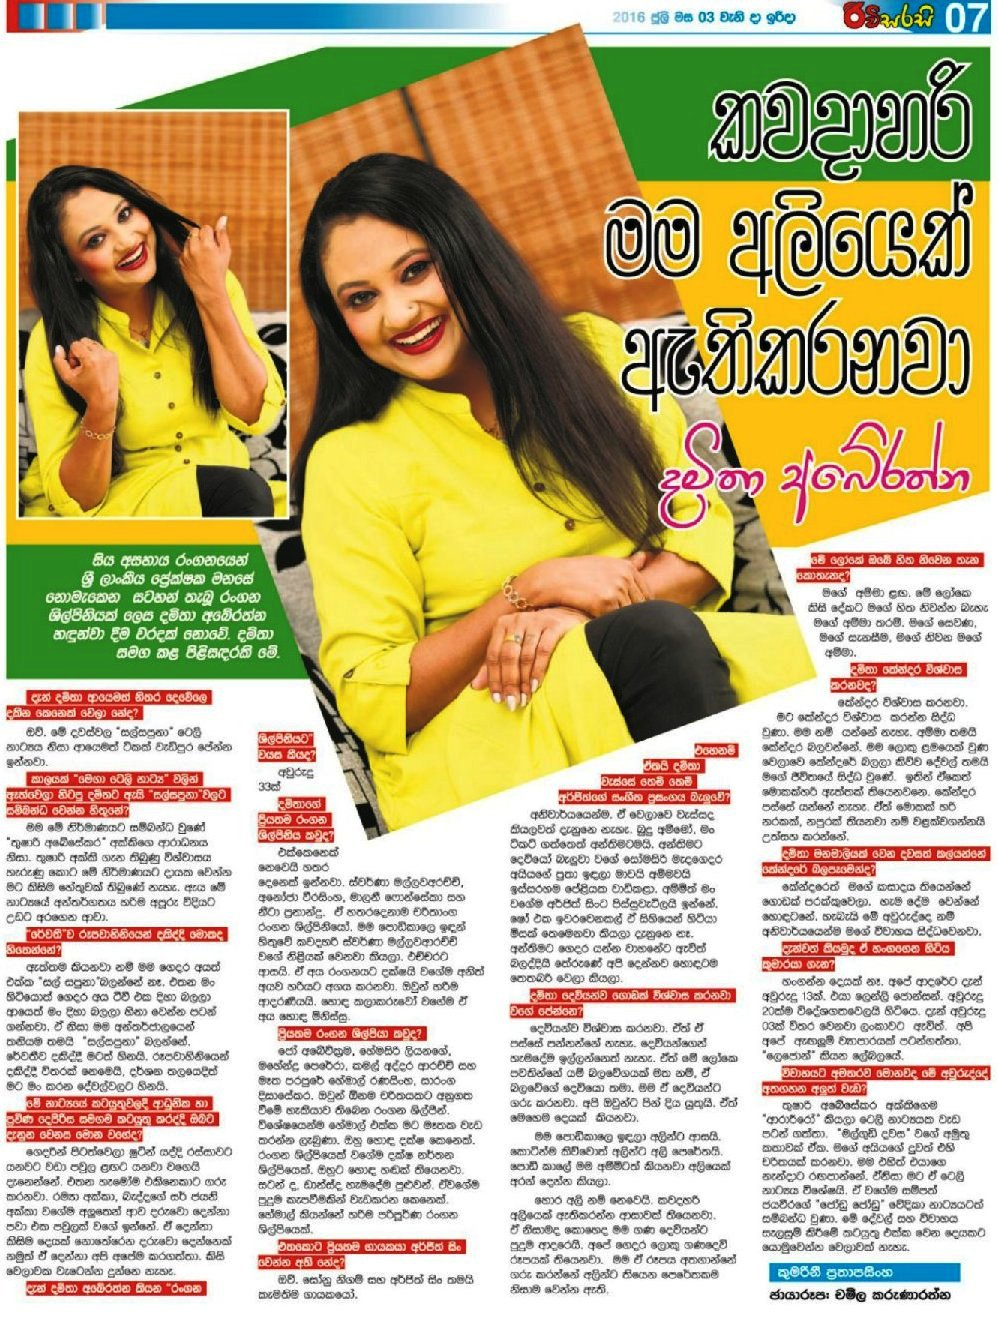 Gossip Chat With Damitha Abeyratne